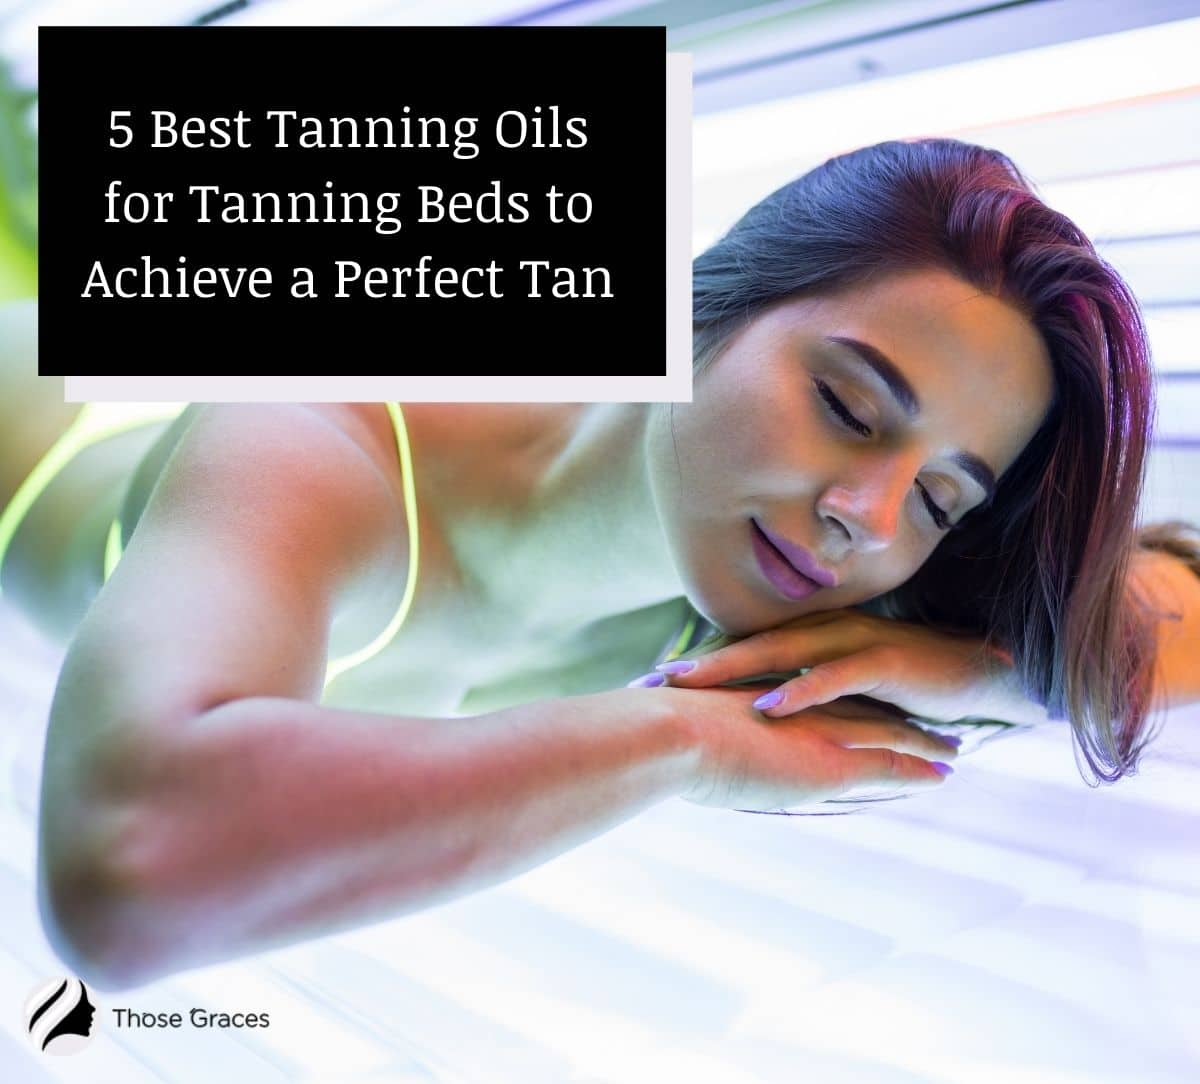 a lady relaxing in a tanning bed